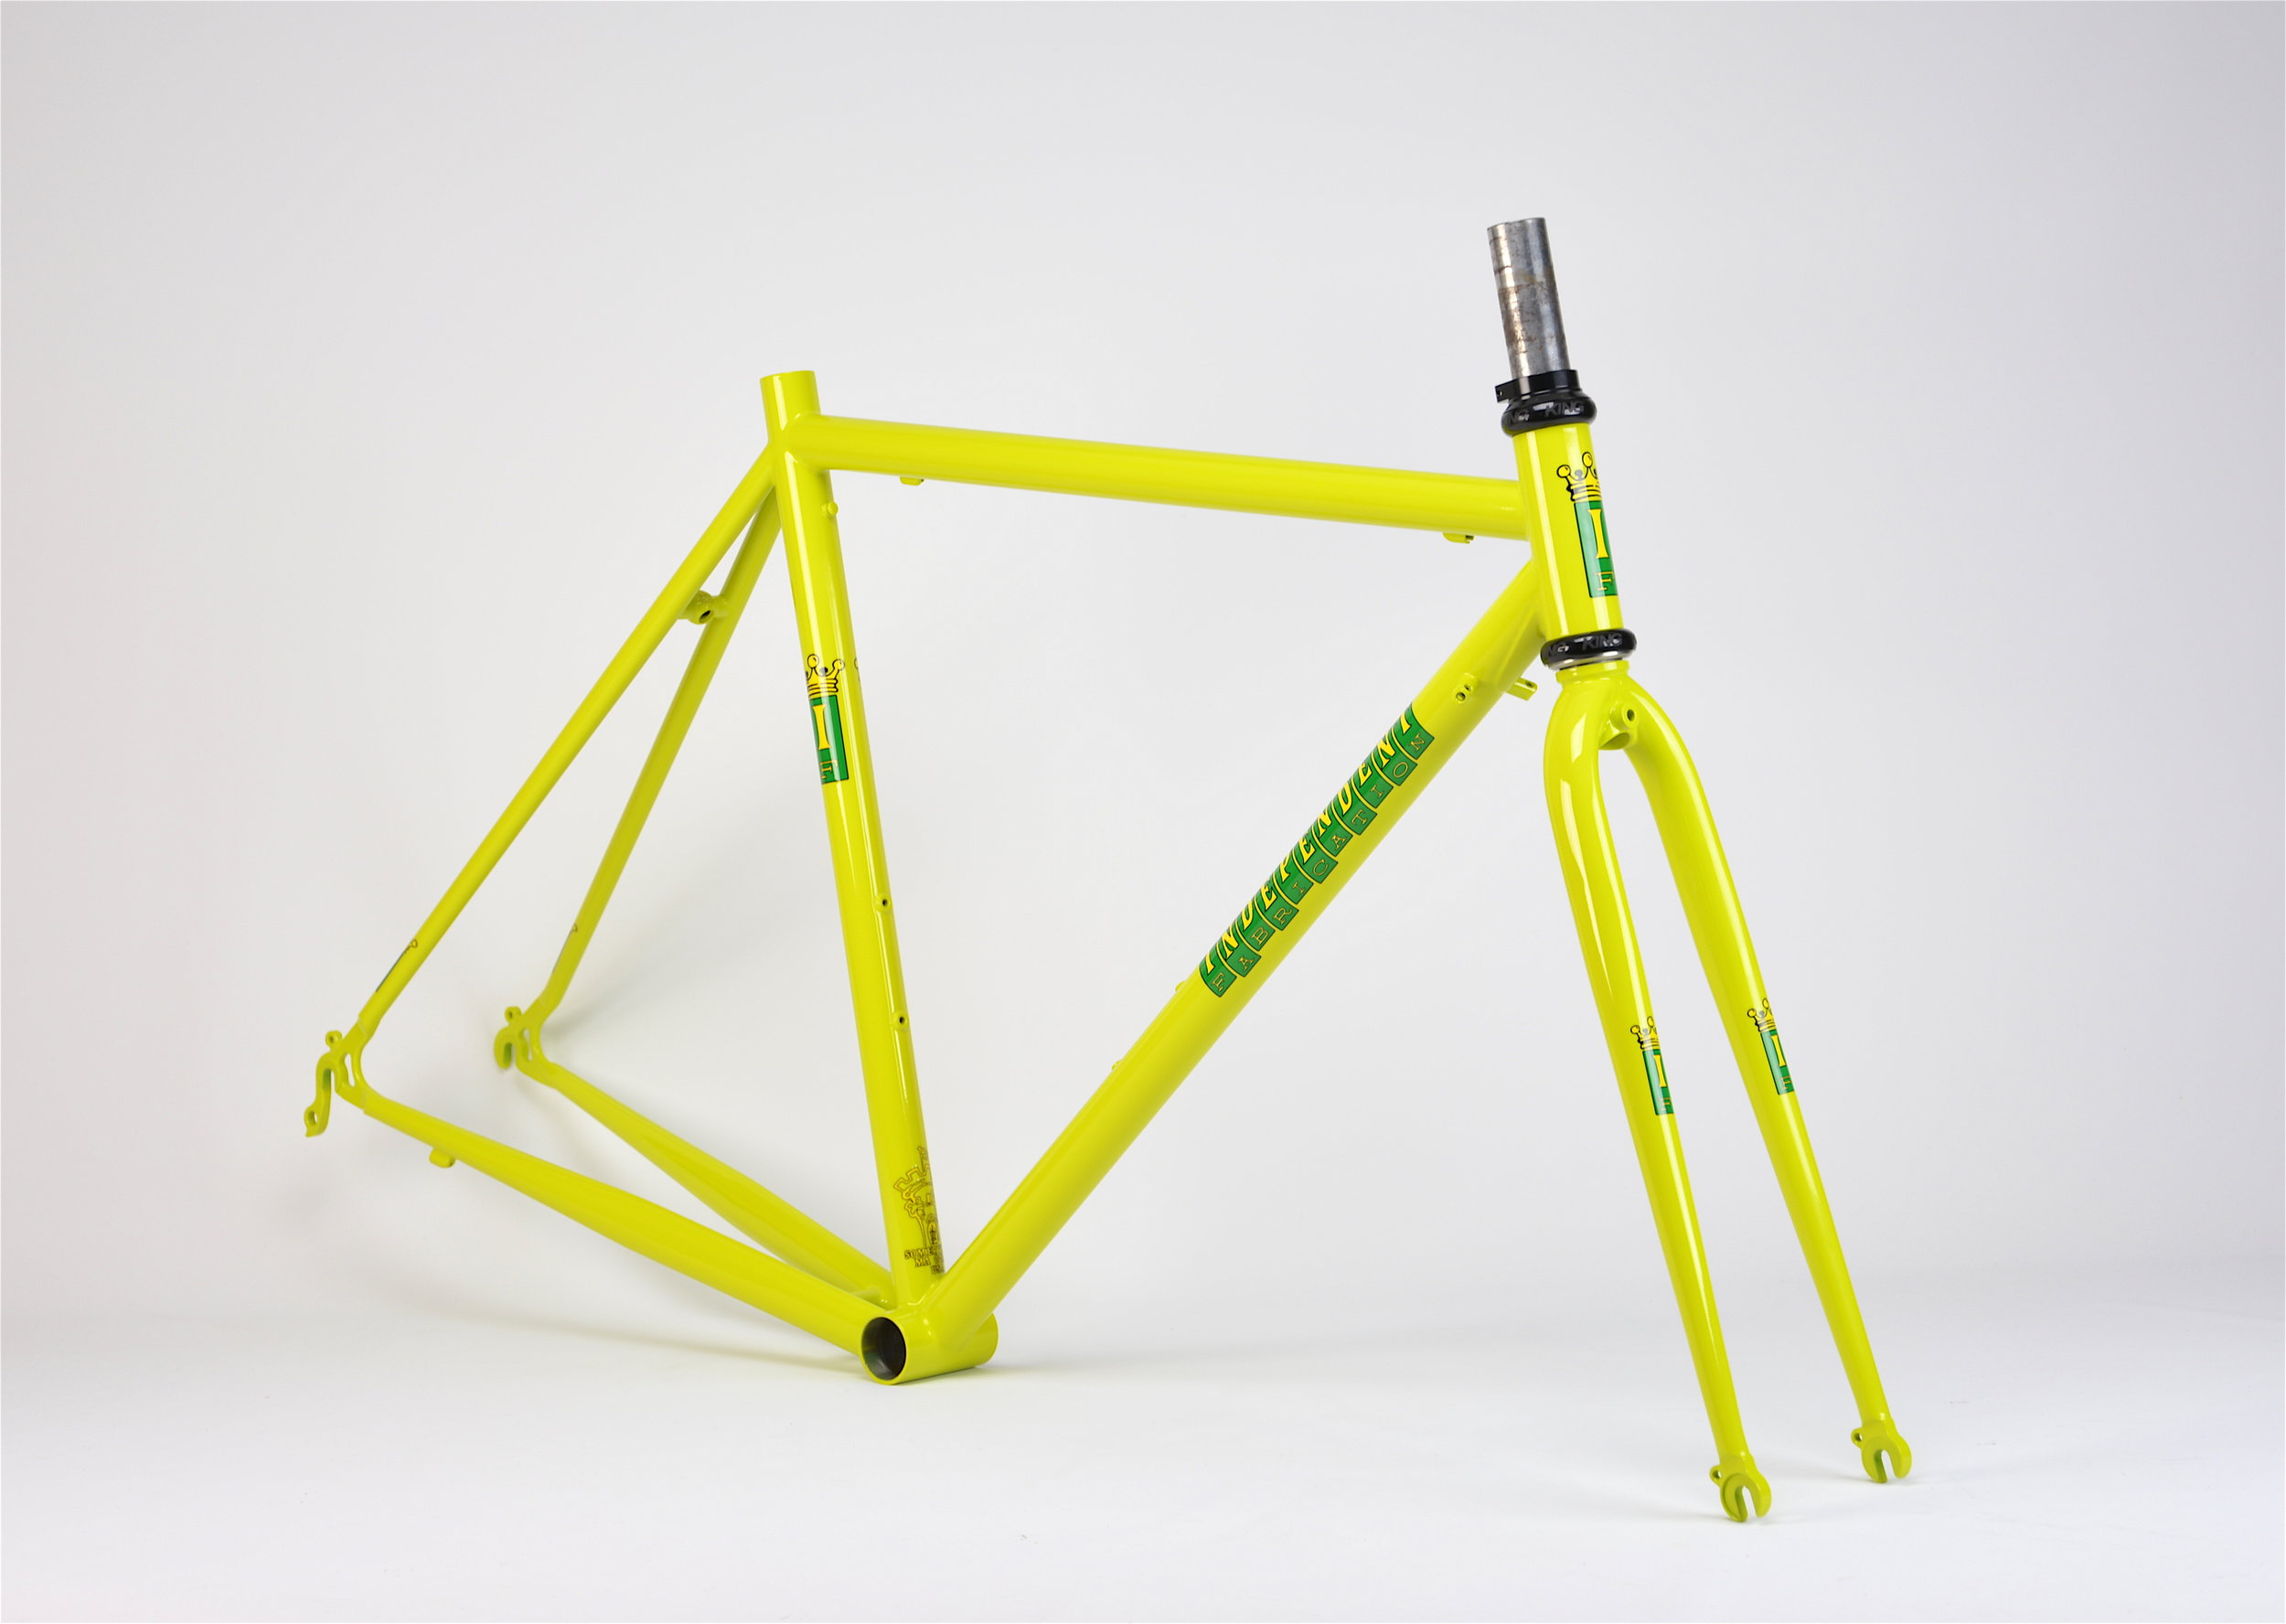 Independent Fabrication Club Racer